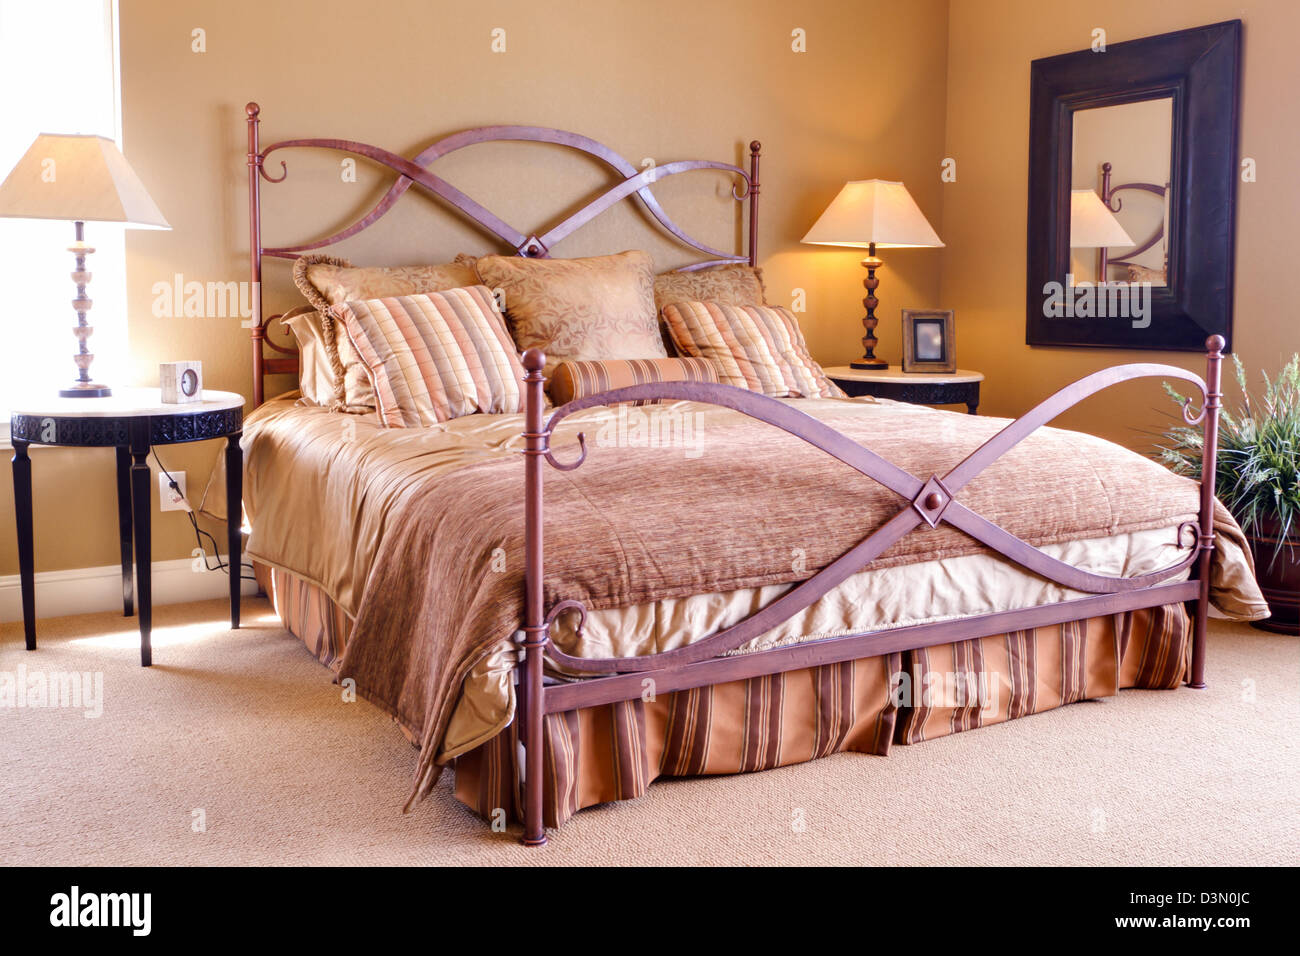 Modern Master Bedroom With King Size Bed Stock Photo Alamy